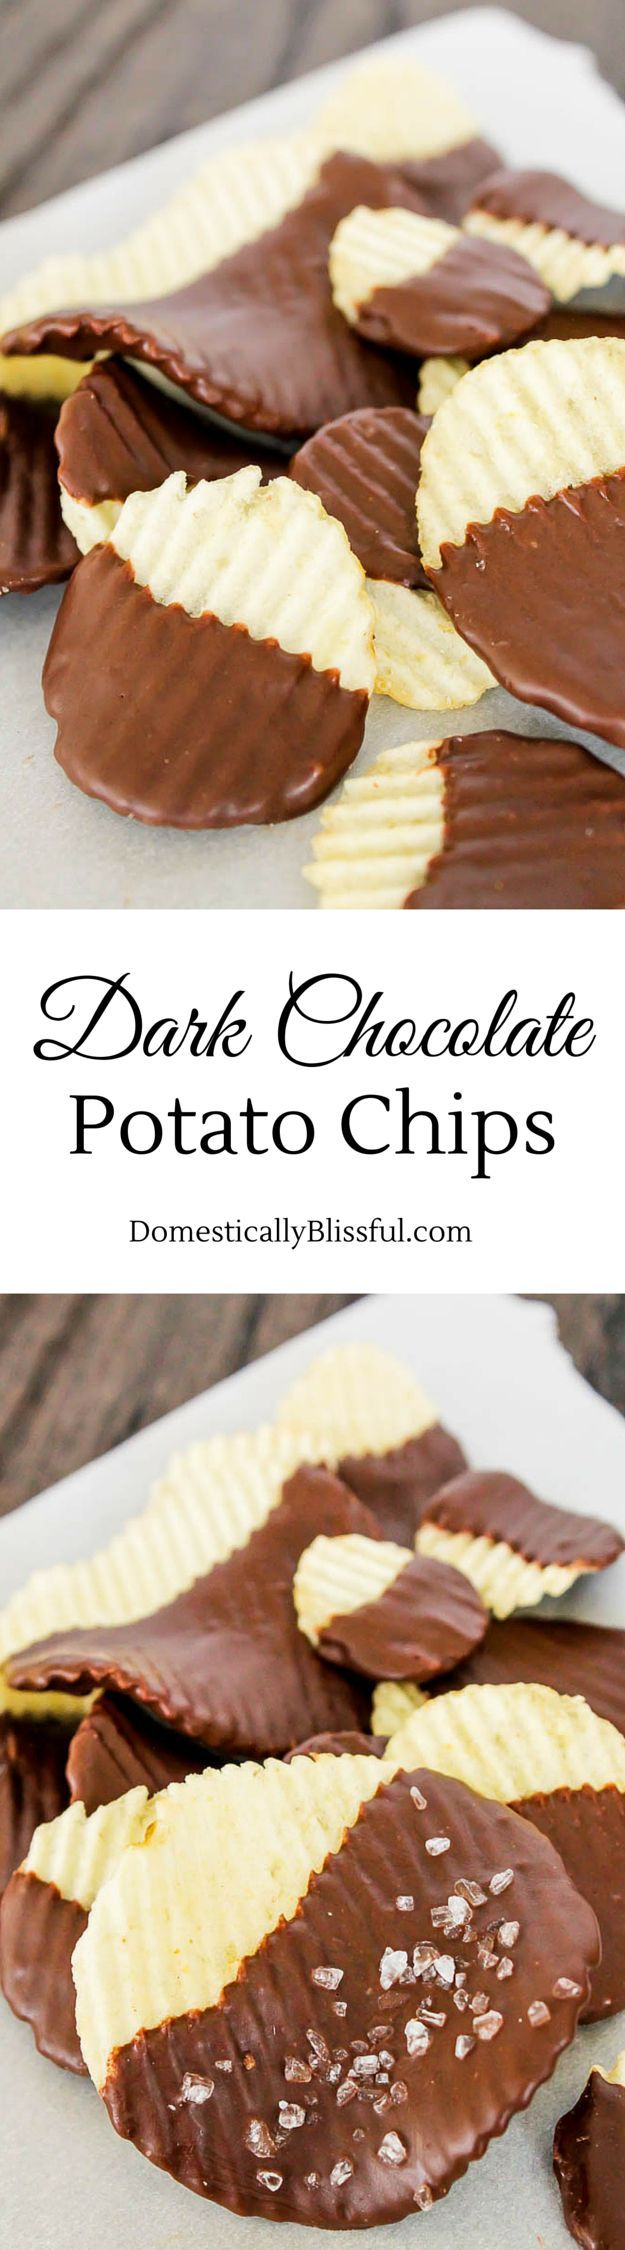 Dark Chocolate Potato Chips are the perfect guilty pleasure snack for those who want something sweet, salty, & covered in dark chocolate!